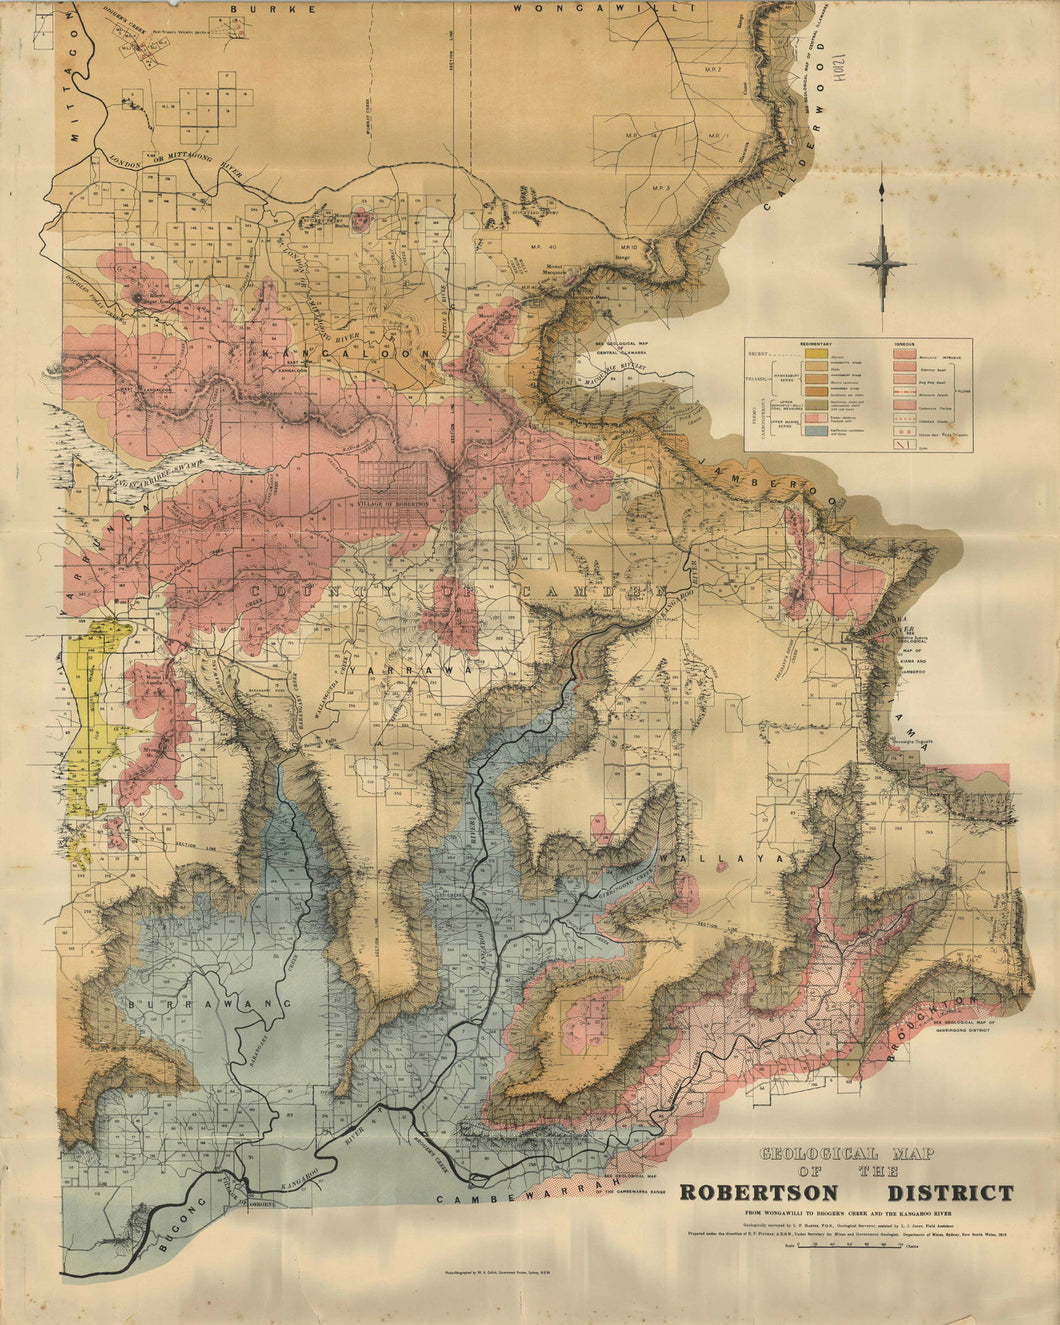 Image of Geological Map of the Robertson District   1912  map